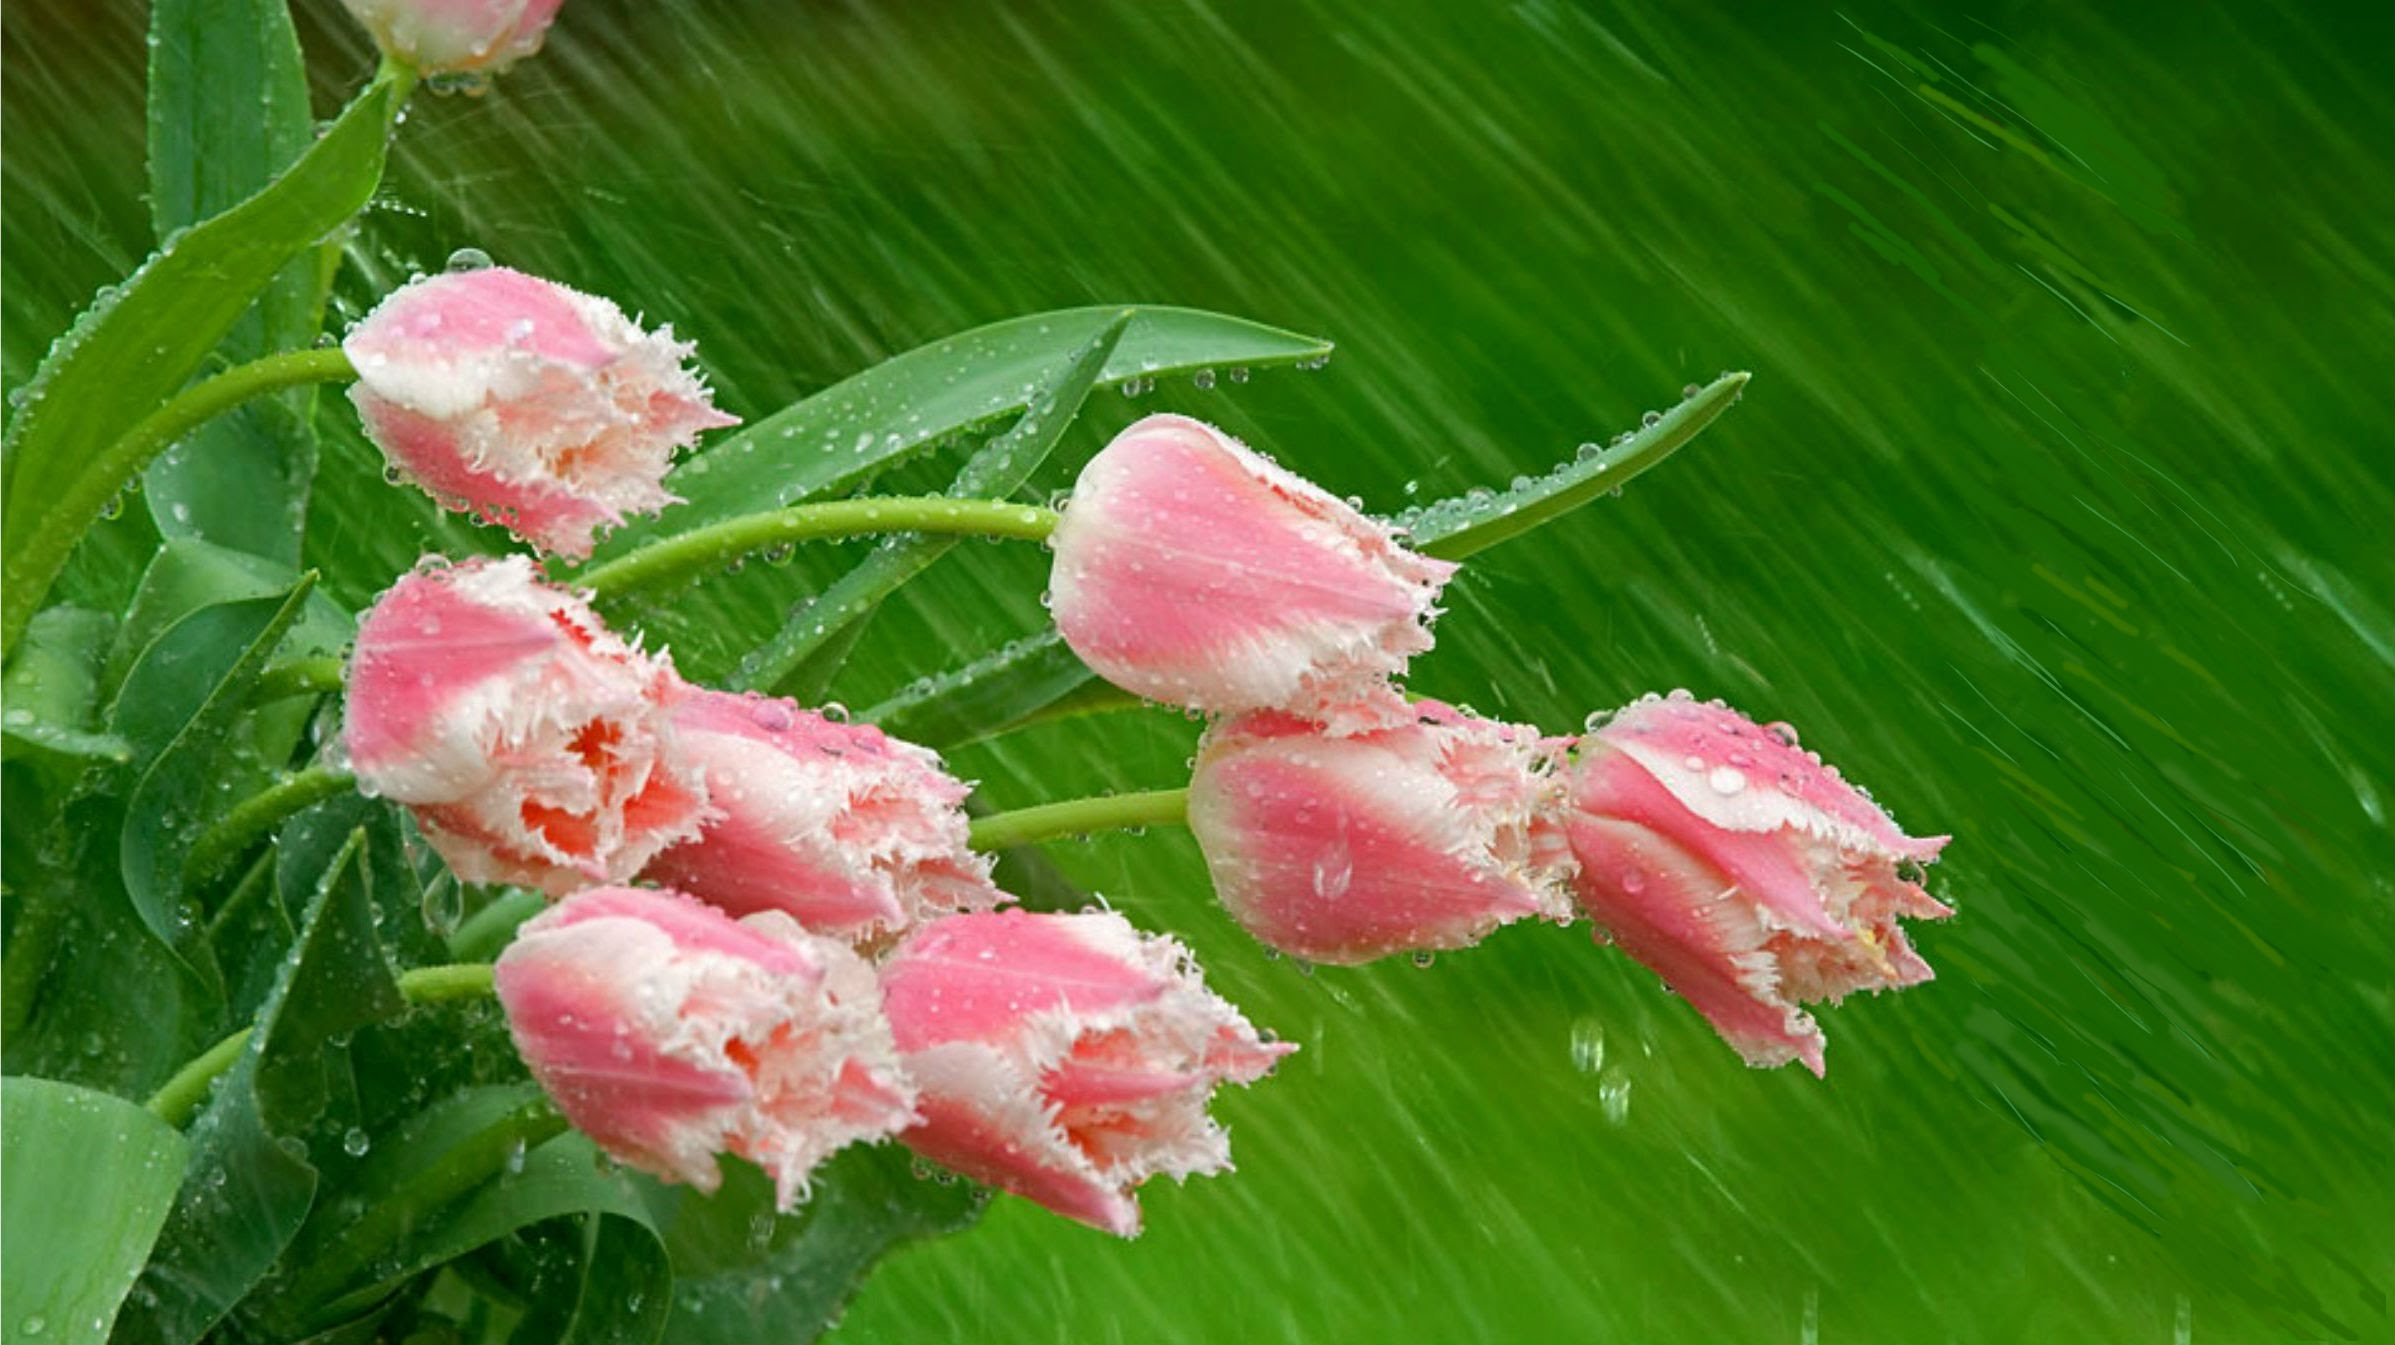 Flowers in the rain wallpapers high quality download free thecheapjerseys Gallery